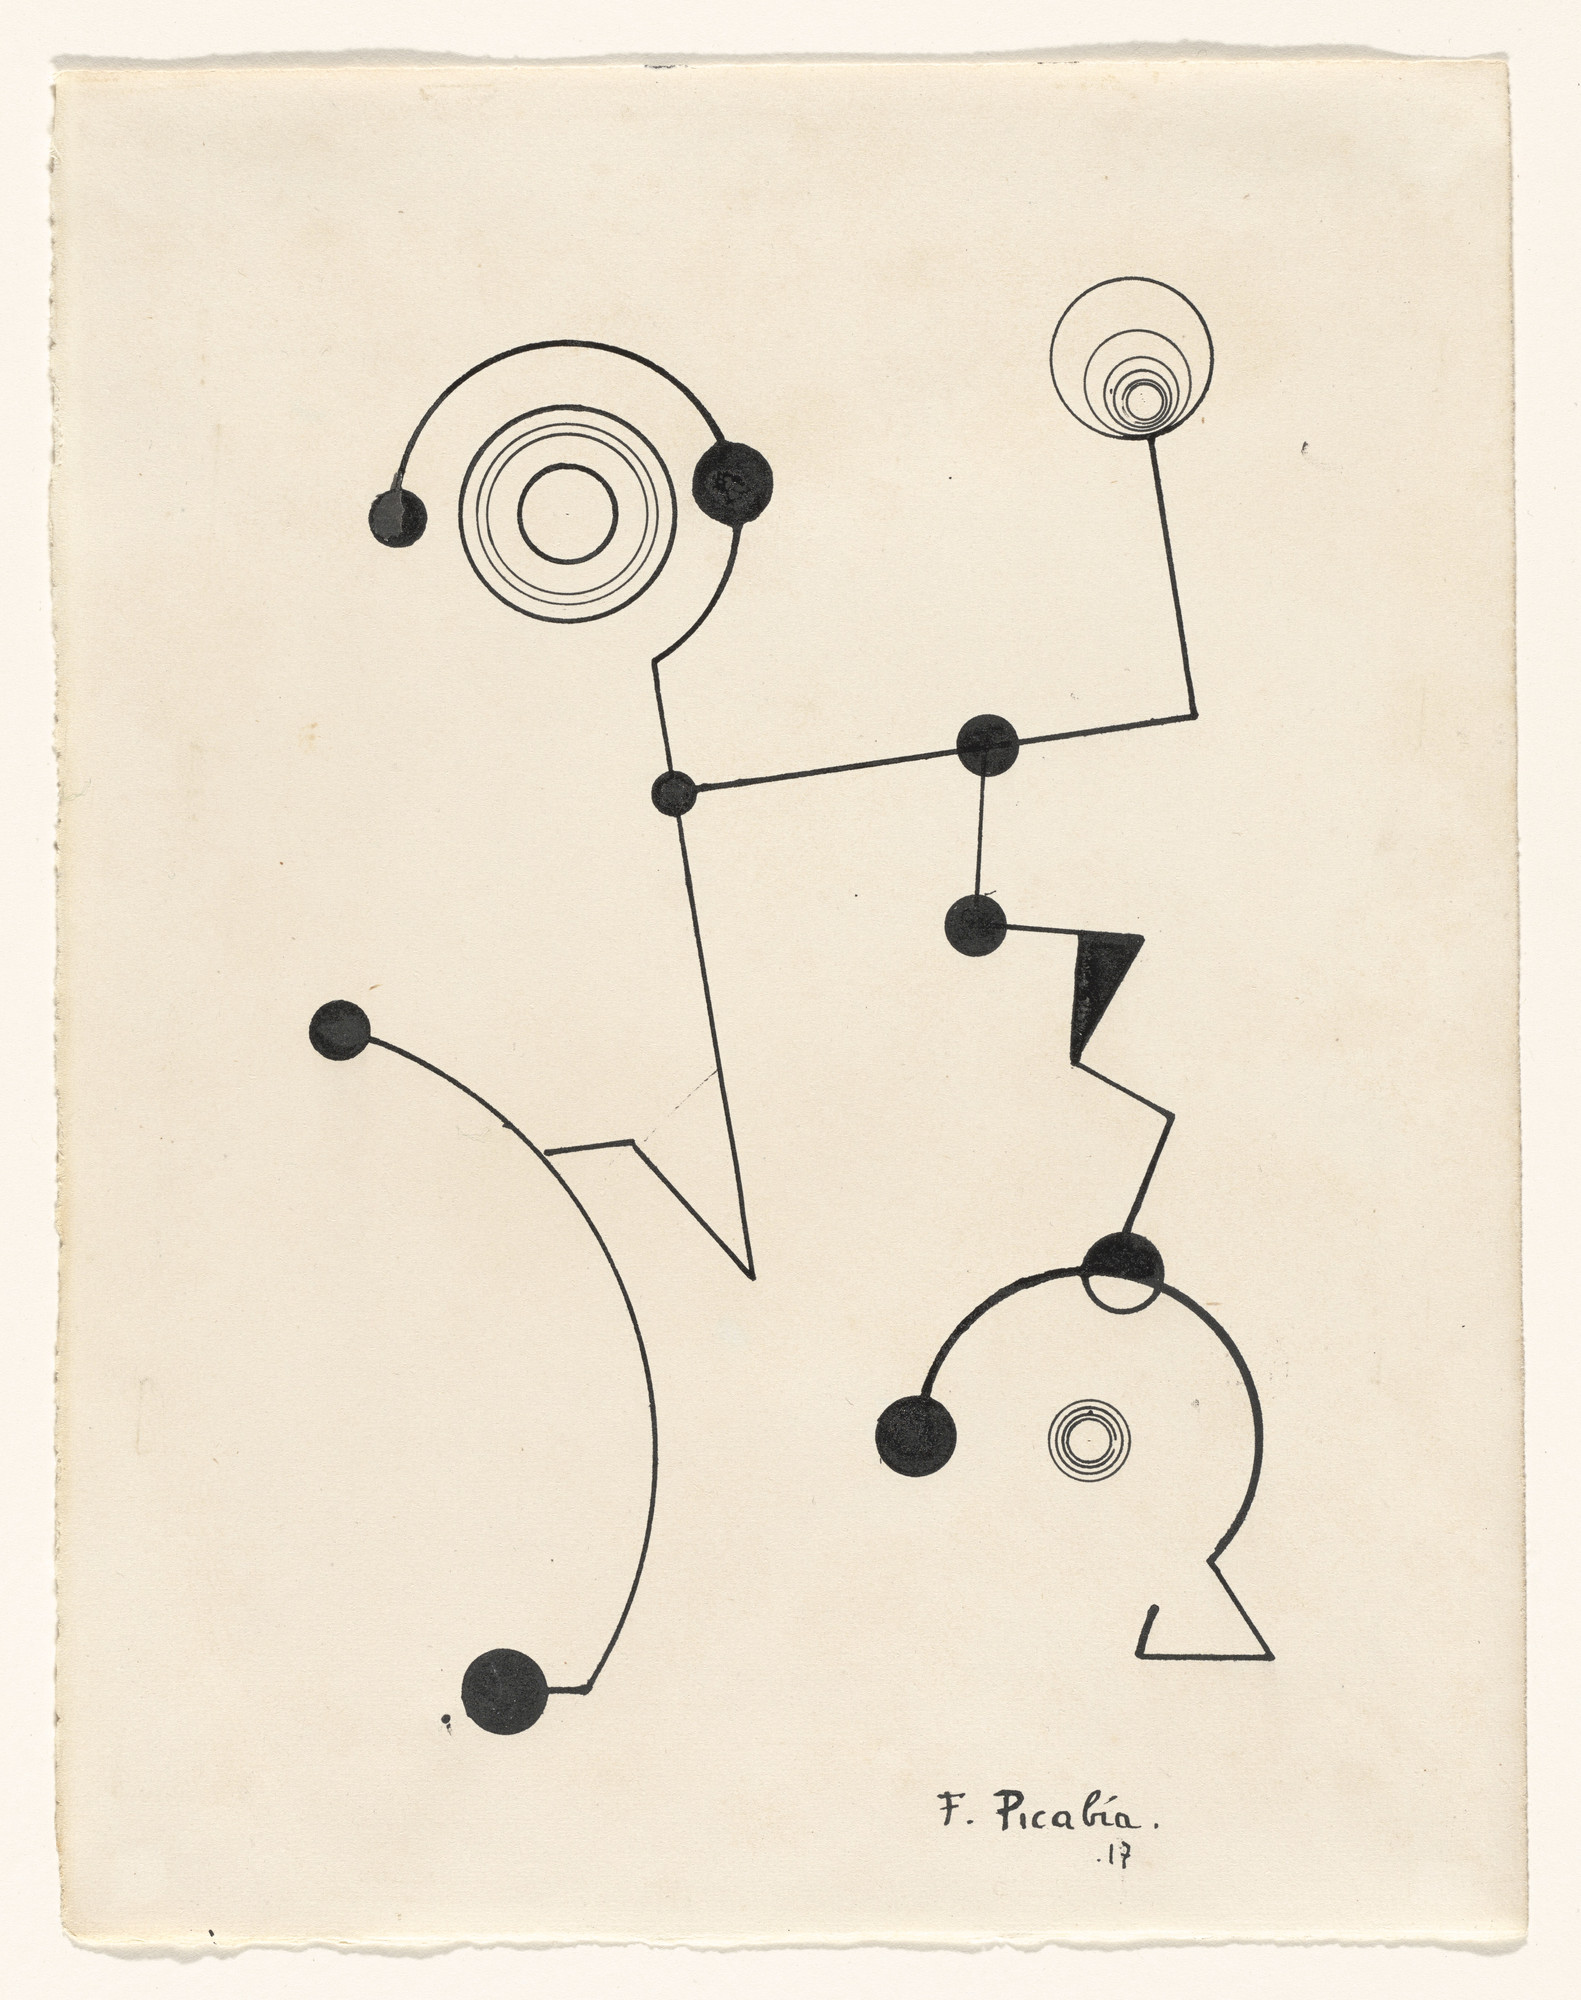 Francis Picabia. Untitled. 1917